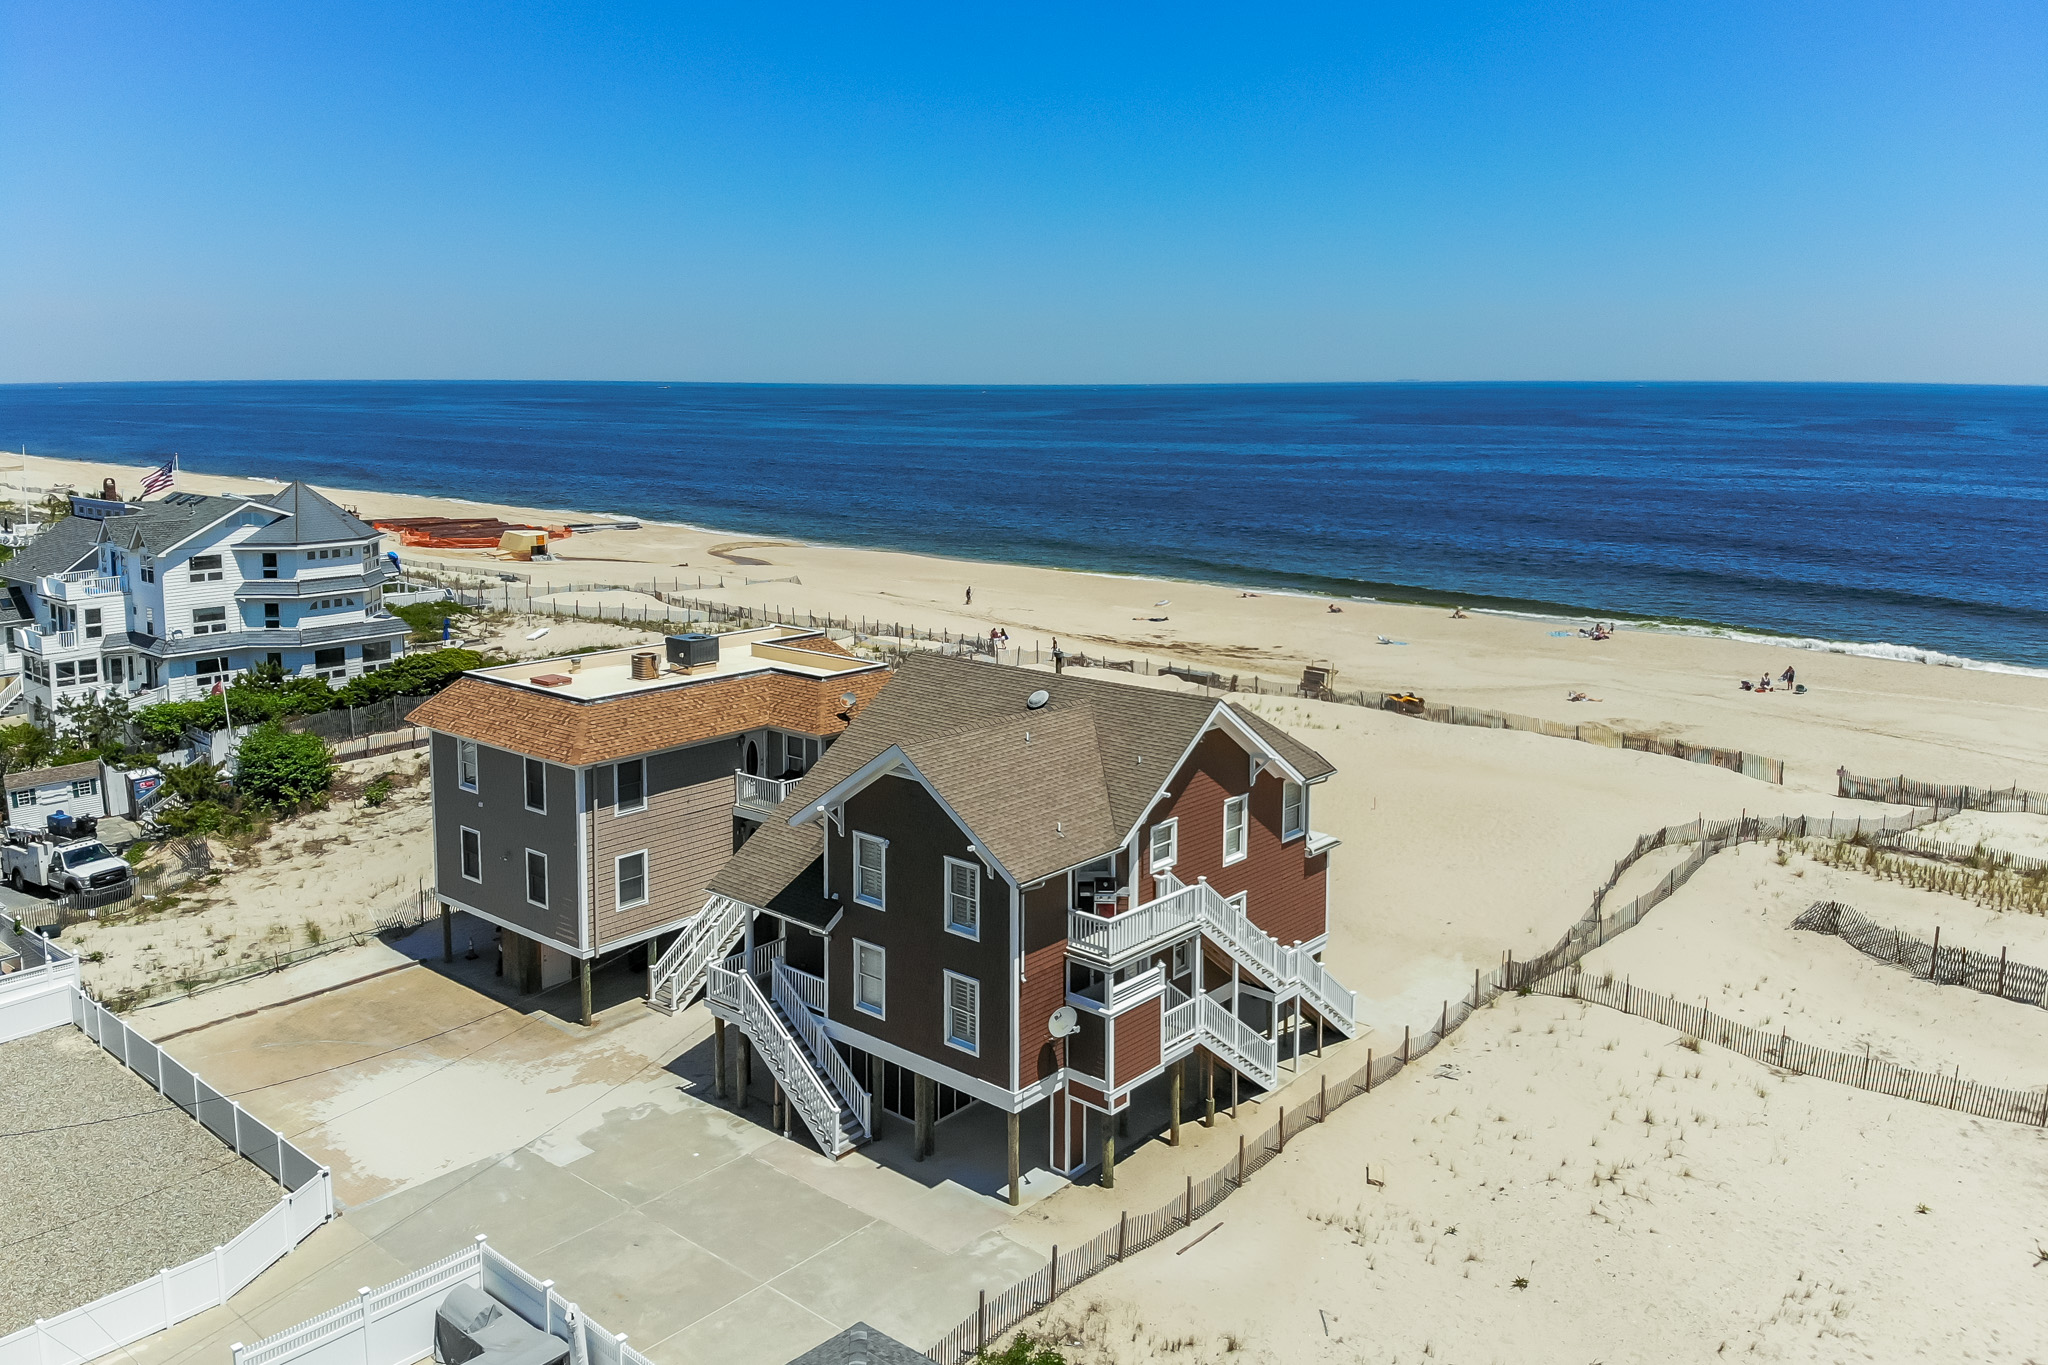 Ocean Front Property For Sale in Point Pleasant Beach New Jersey! 6 on somers point nj, high point high school nj, bergen point amusement park bayonne nj, ave point jersey city nj, leeds point nj, 709 point beach nj, cape may point nj, pleasant beach nj,